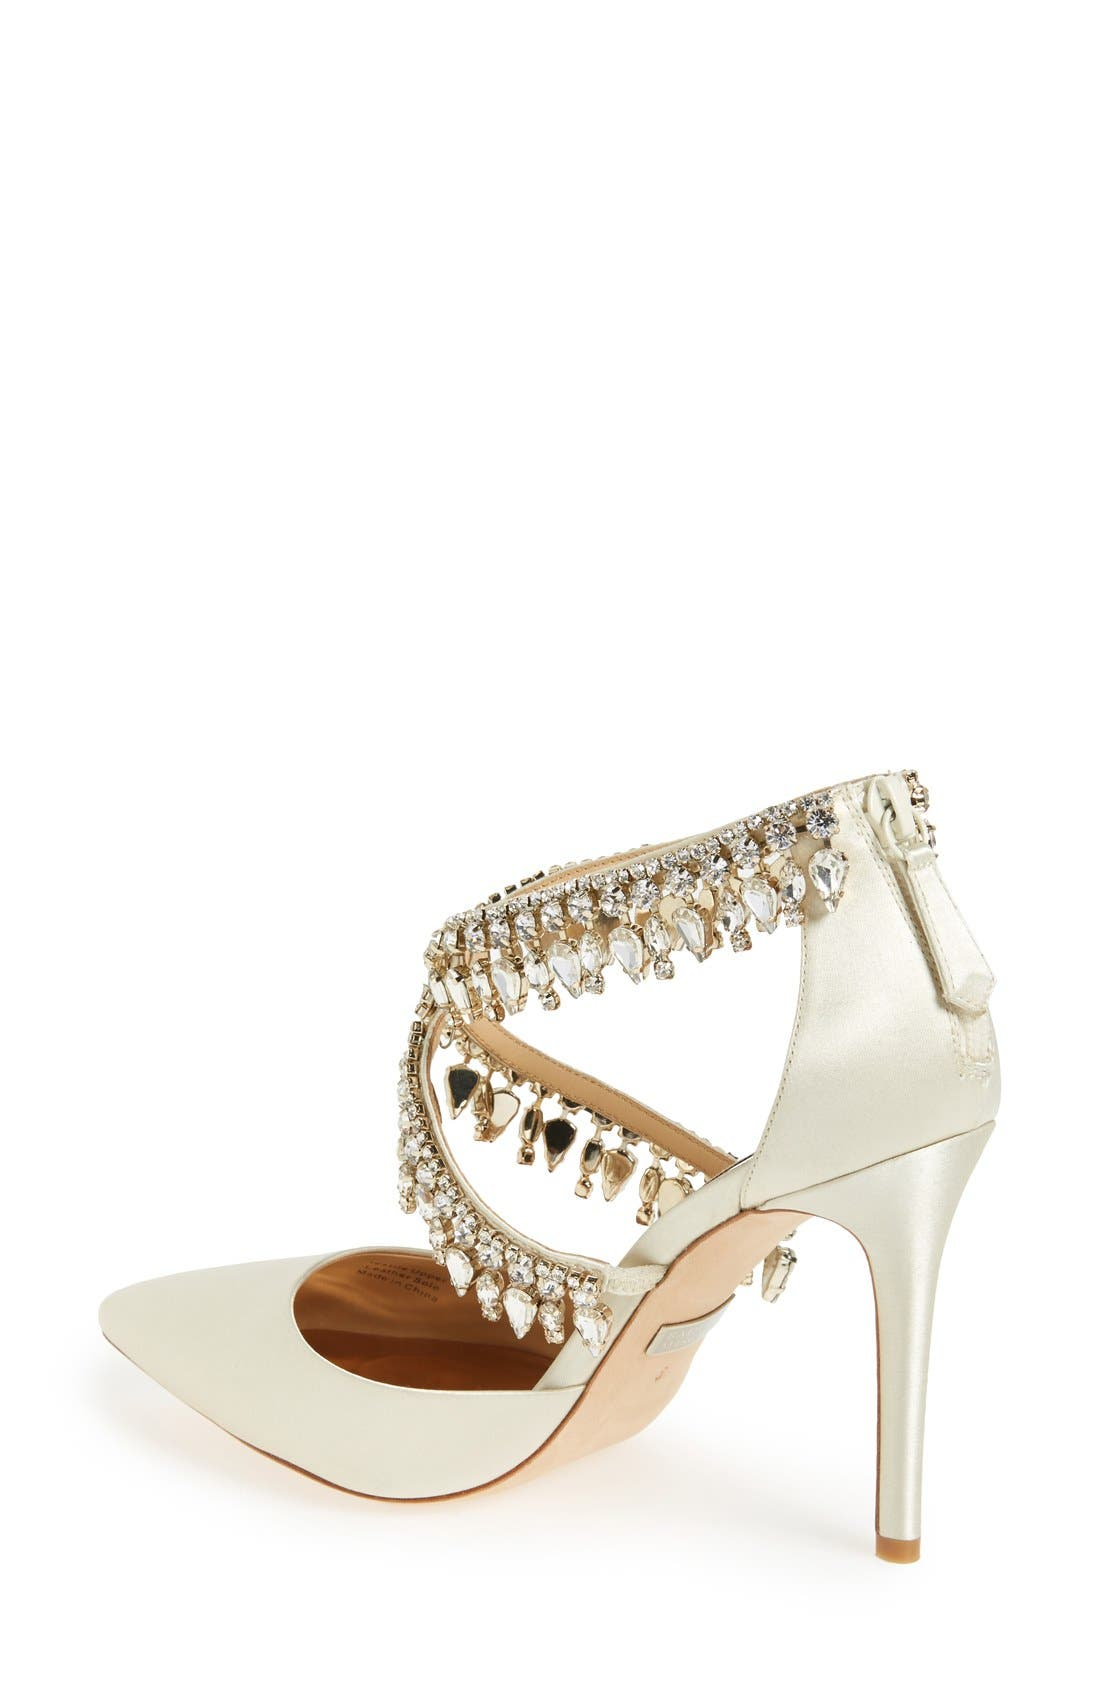 Alternate Image 2  - Badgley Mischka 'Glamorous' Crystal-Embellished Pointy Toe Pump (Women)